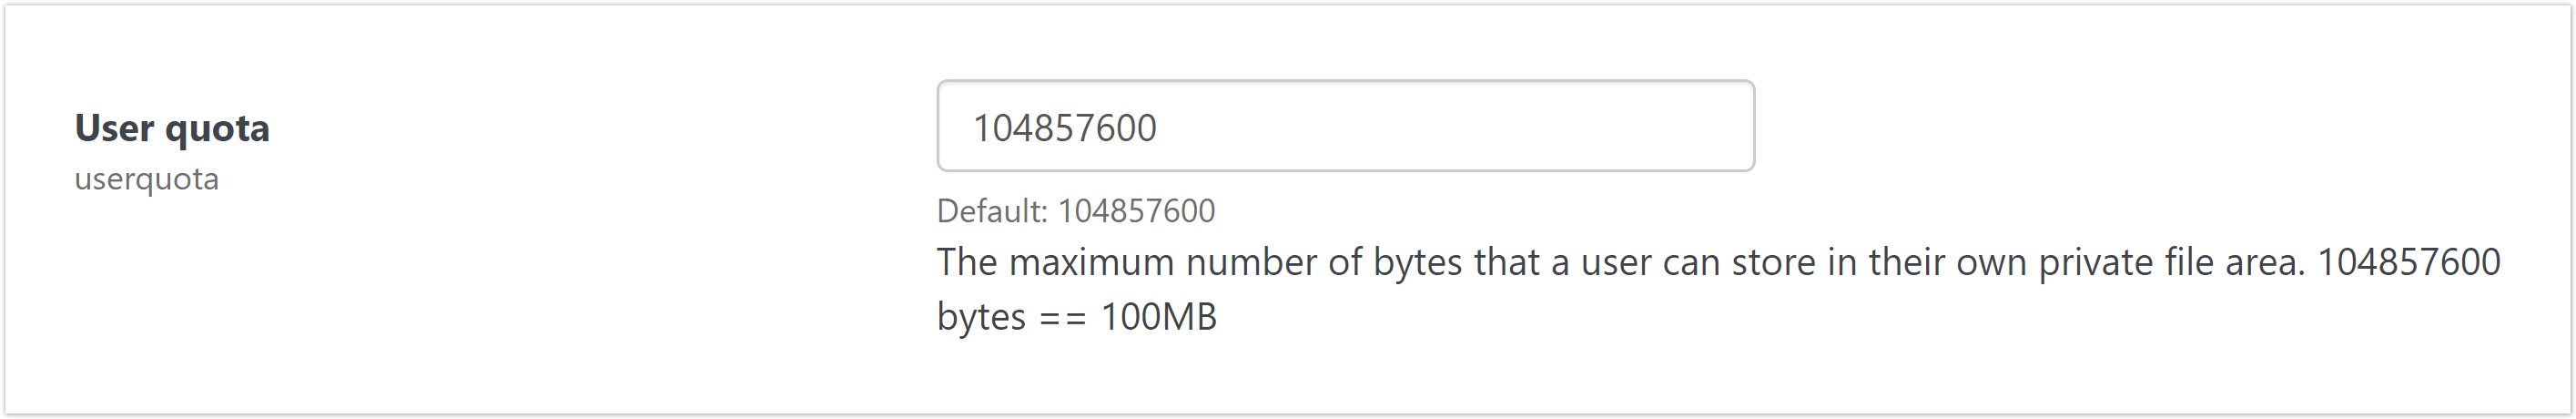 The user quota setting for limiting private file size.